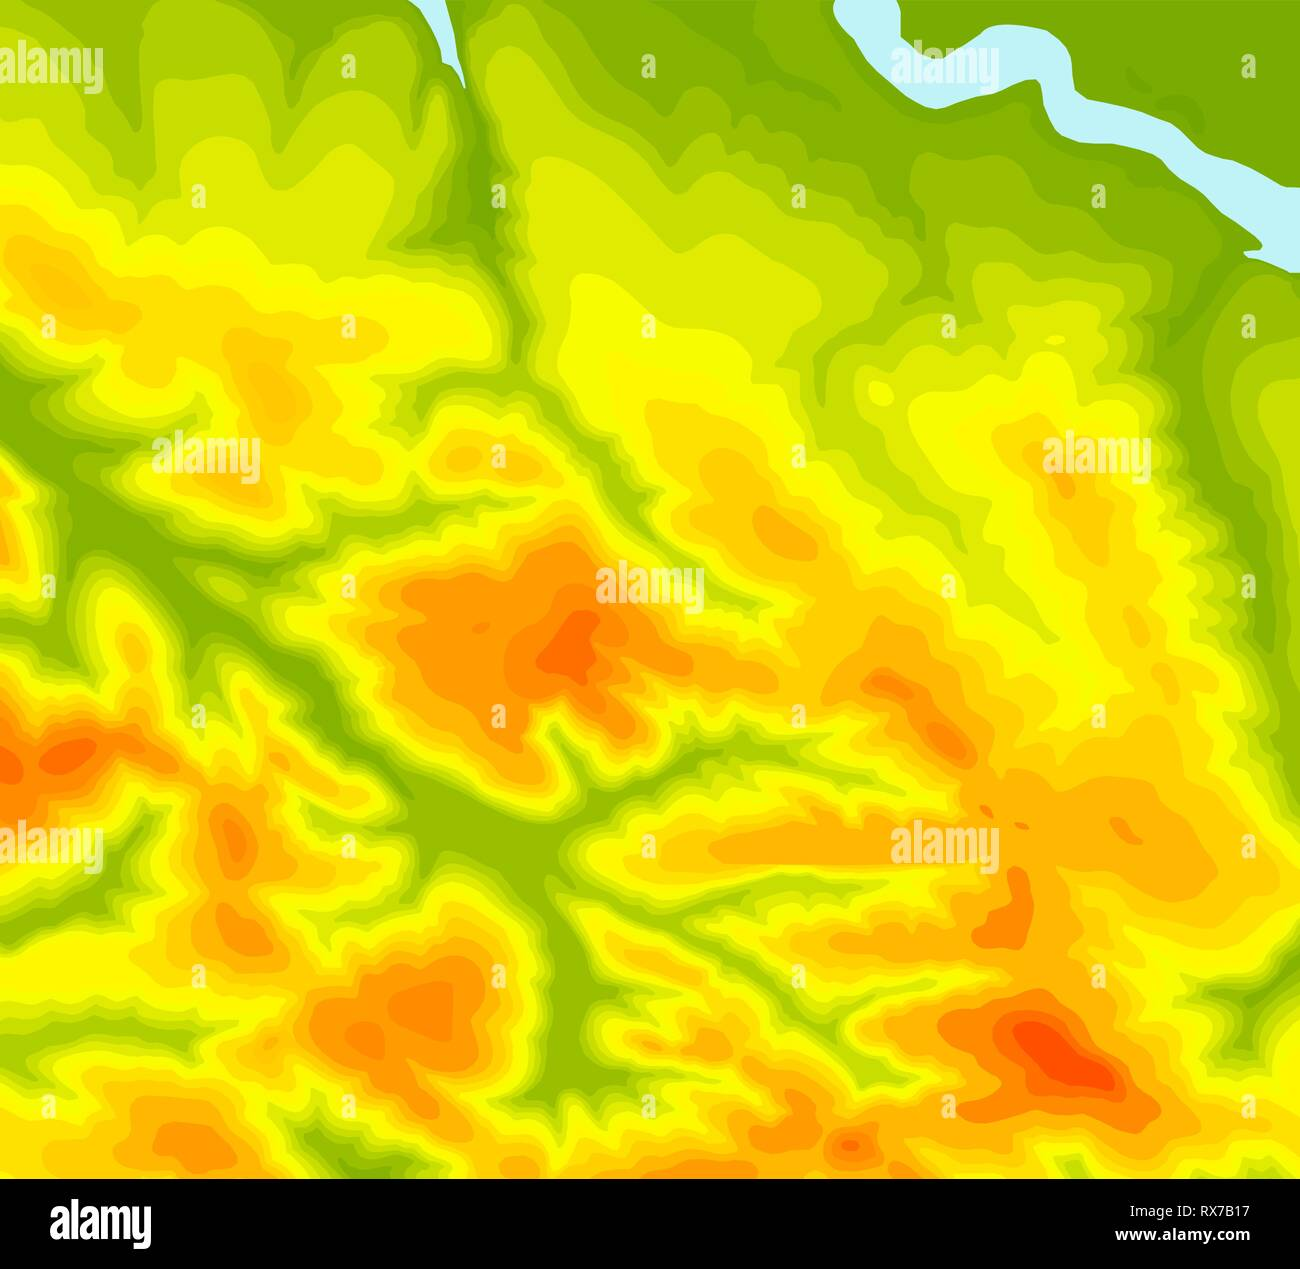 Background of the topographic map. Topographic map lines, contour background. Geographic abstract grid. EPS 10 vector illustration - Stock Image